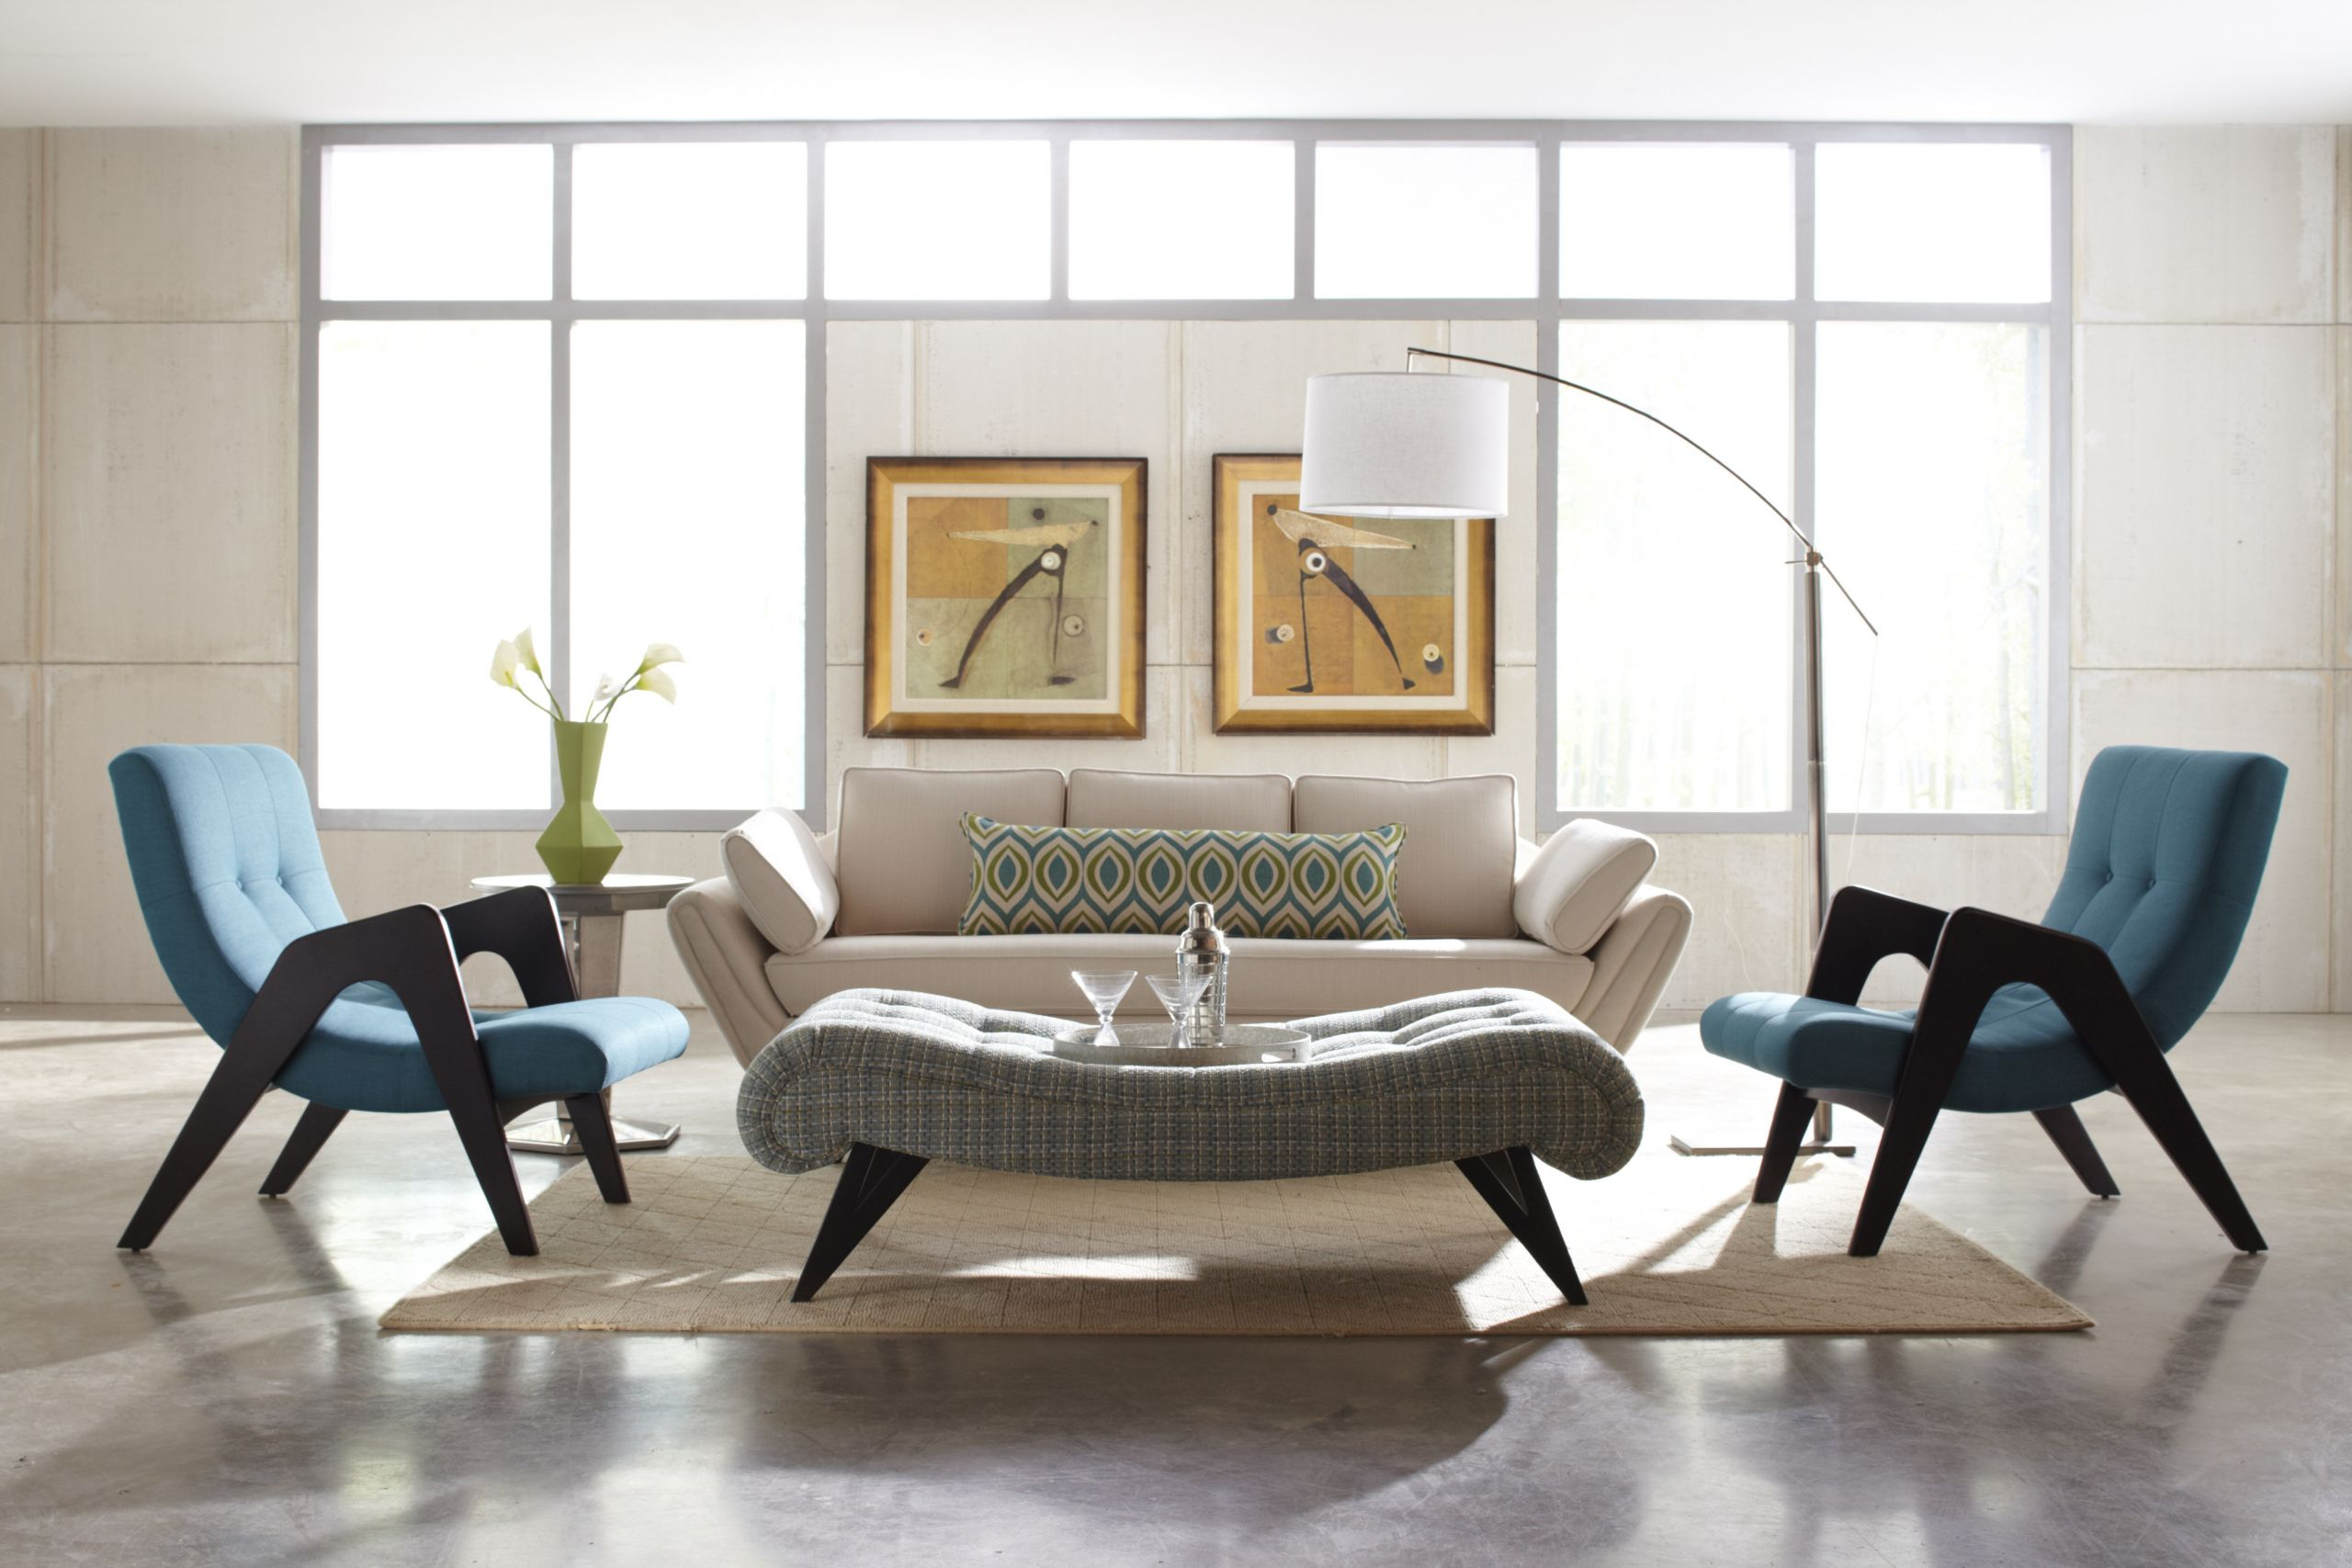 Modern Contemporary Living Room Furniture  Contemporary or Modern What's the difference in interior